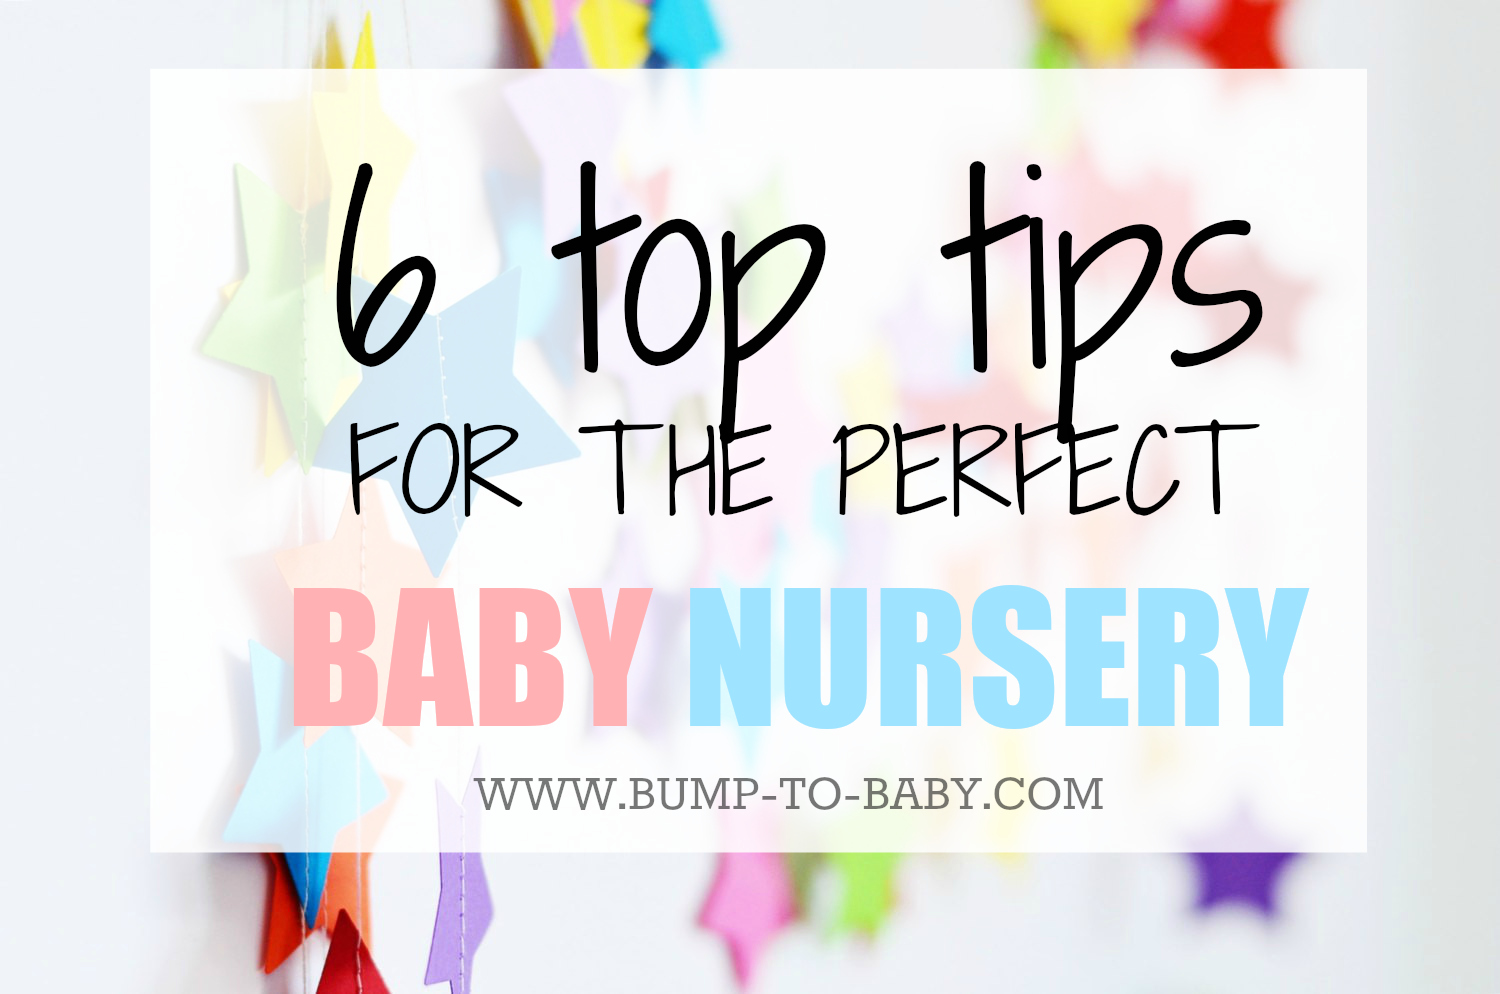 Nursery decor, bright nursery decor, nursery decor tips